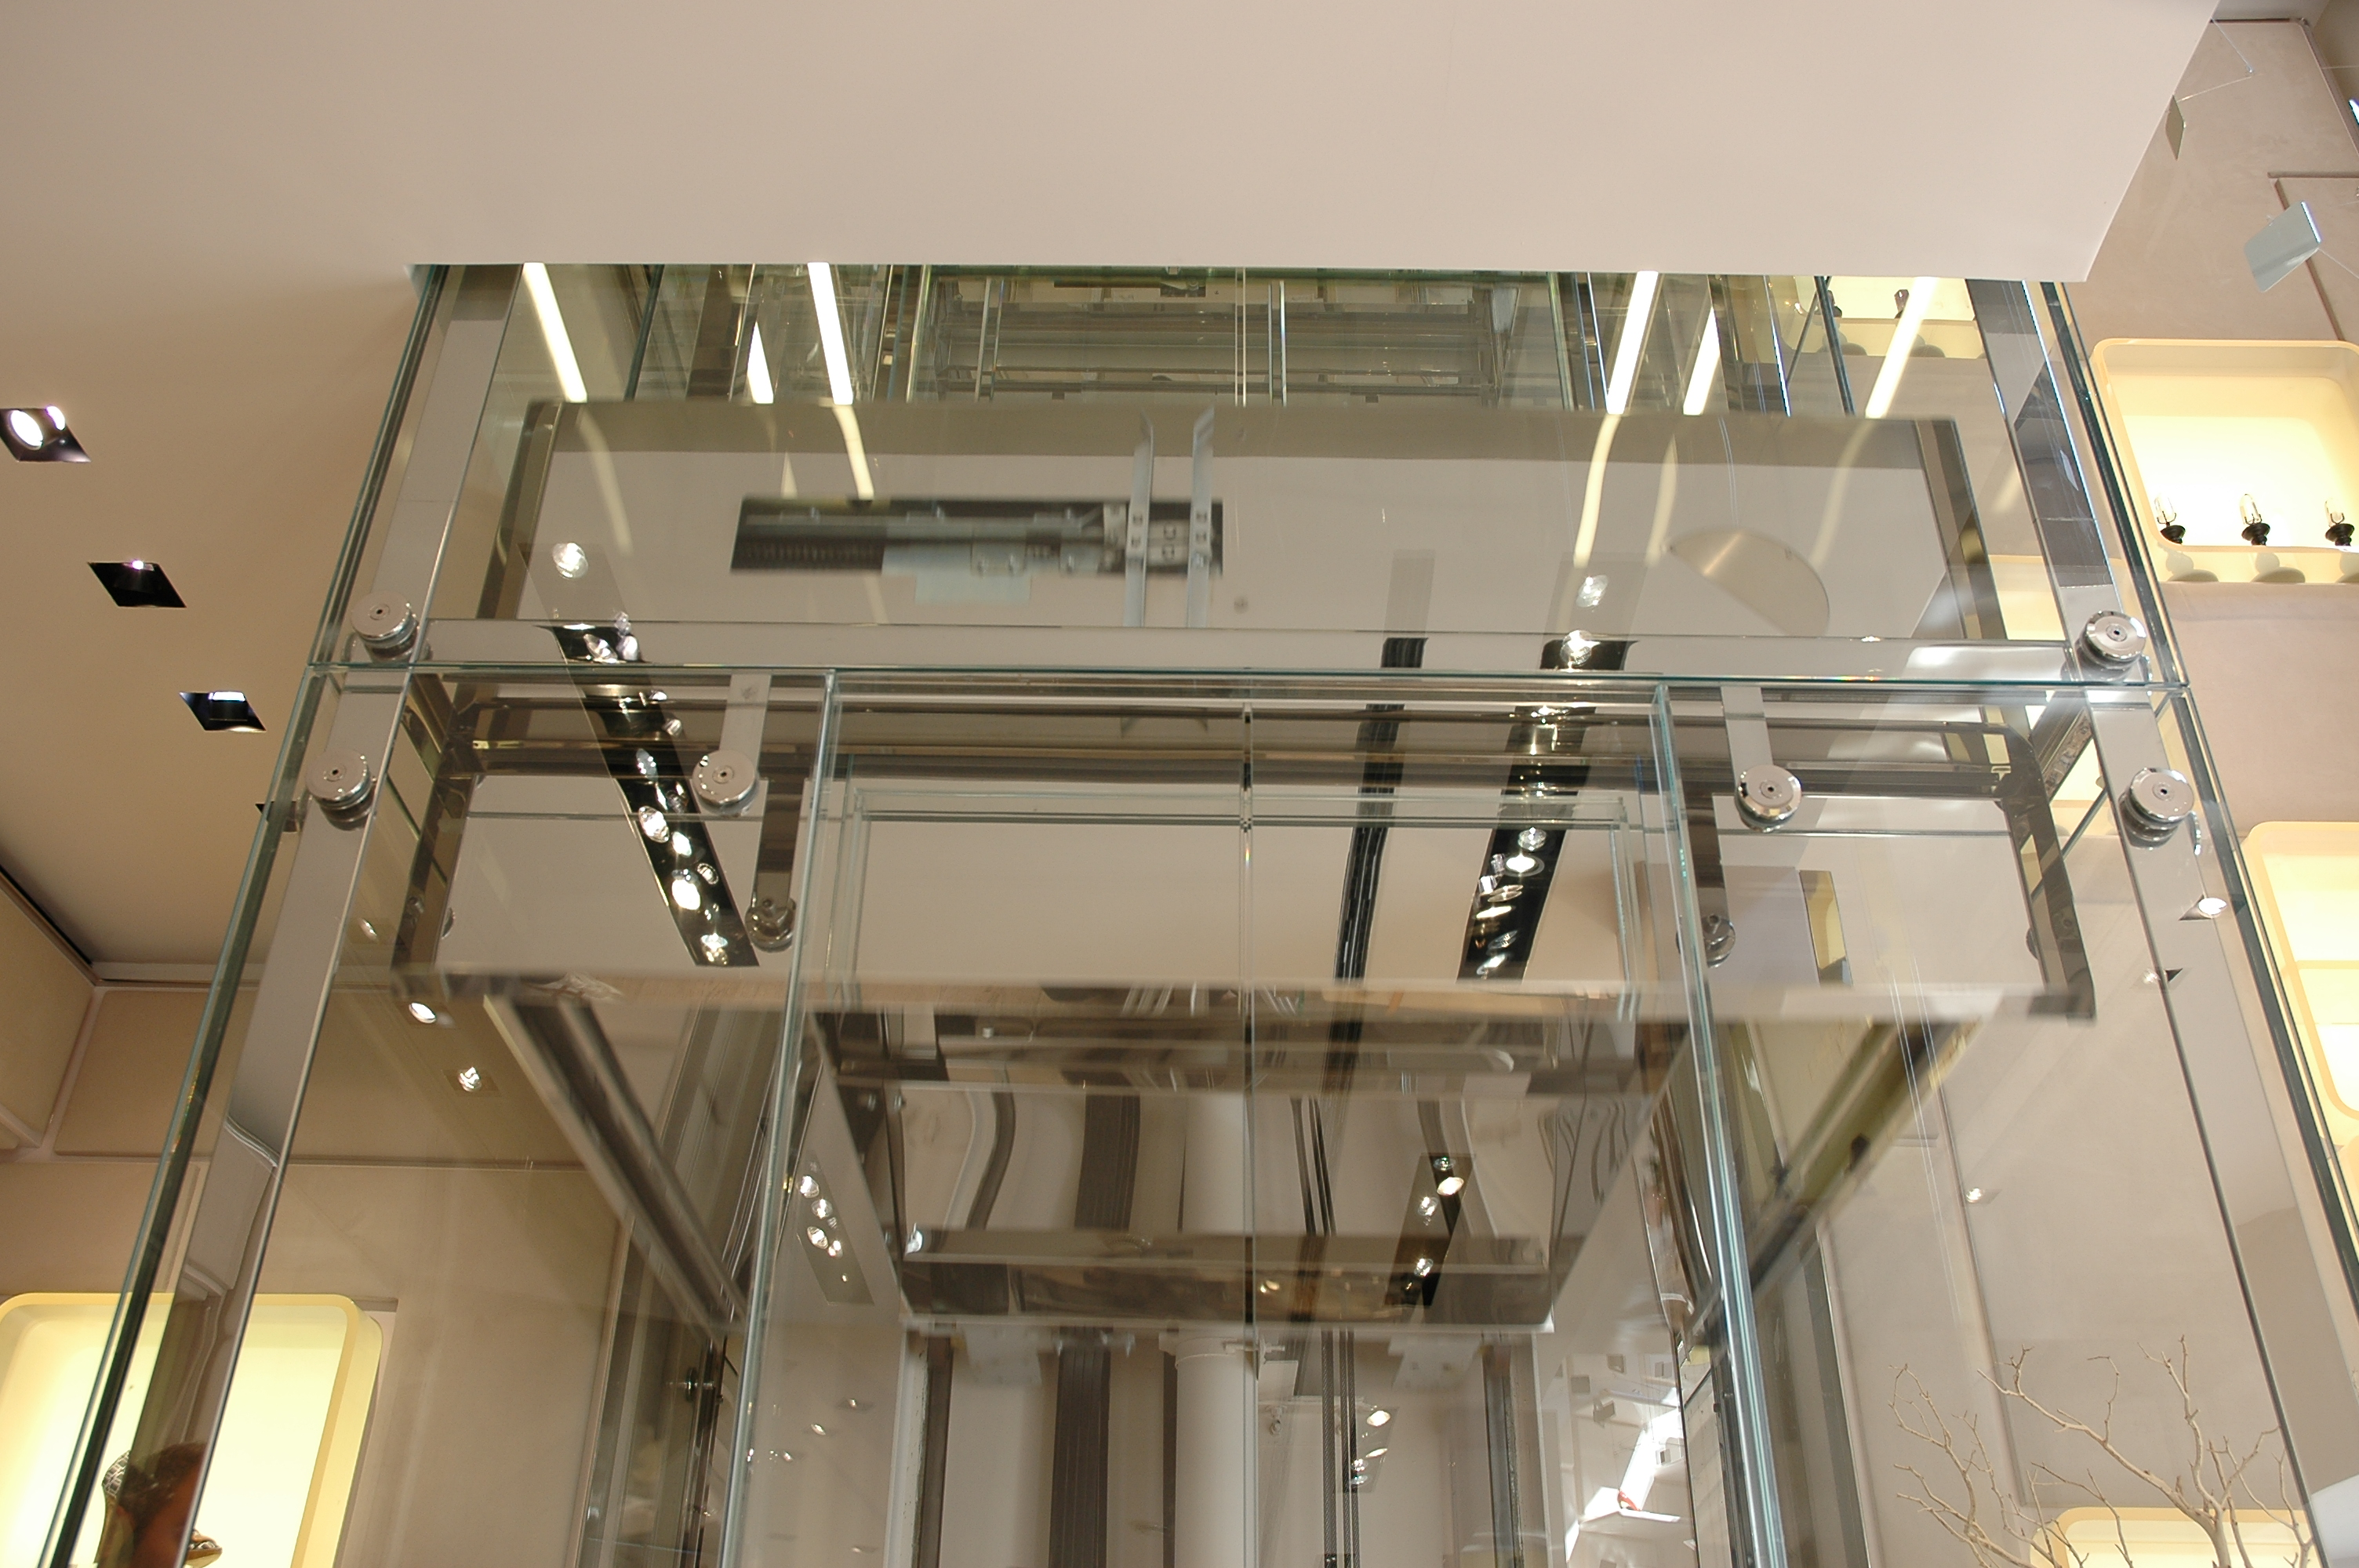 Indoor elevators for the luxury Roger Vivier Boutique in Milan